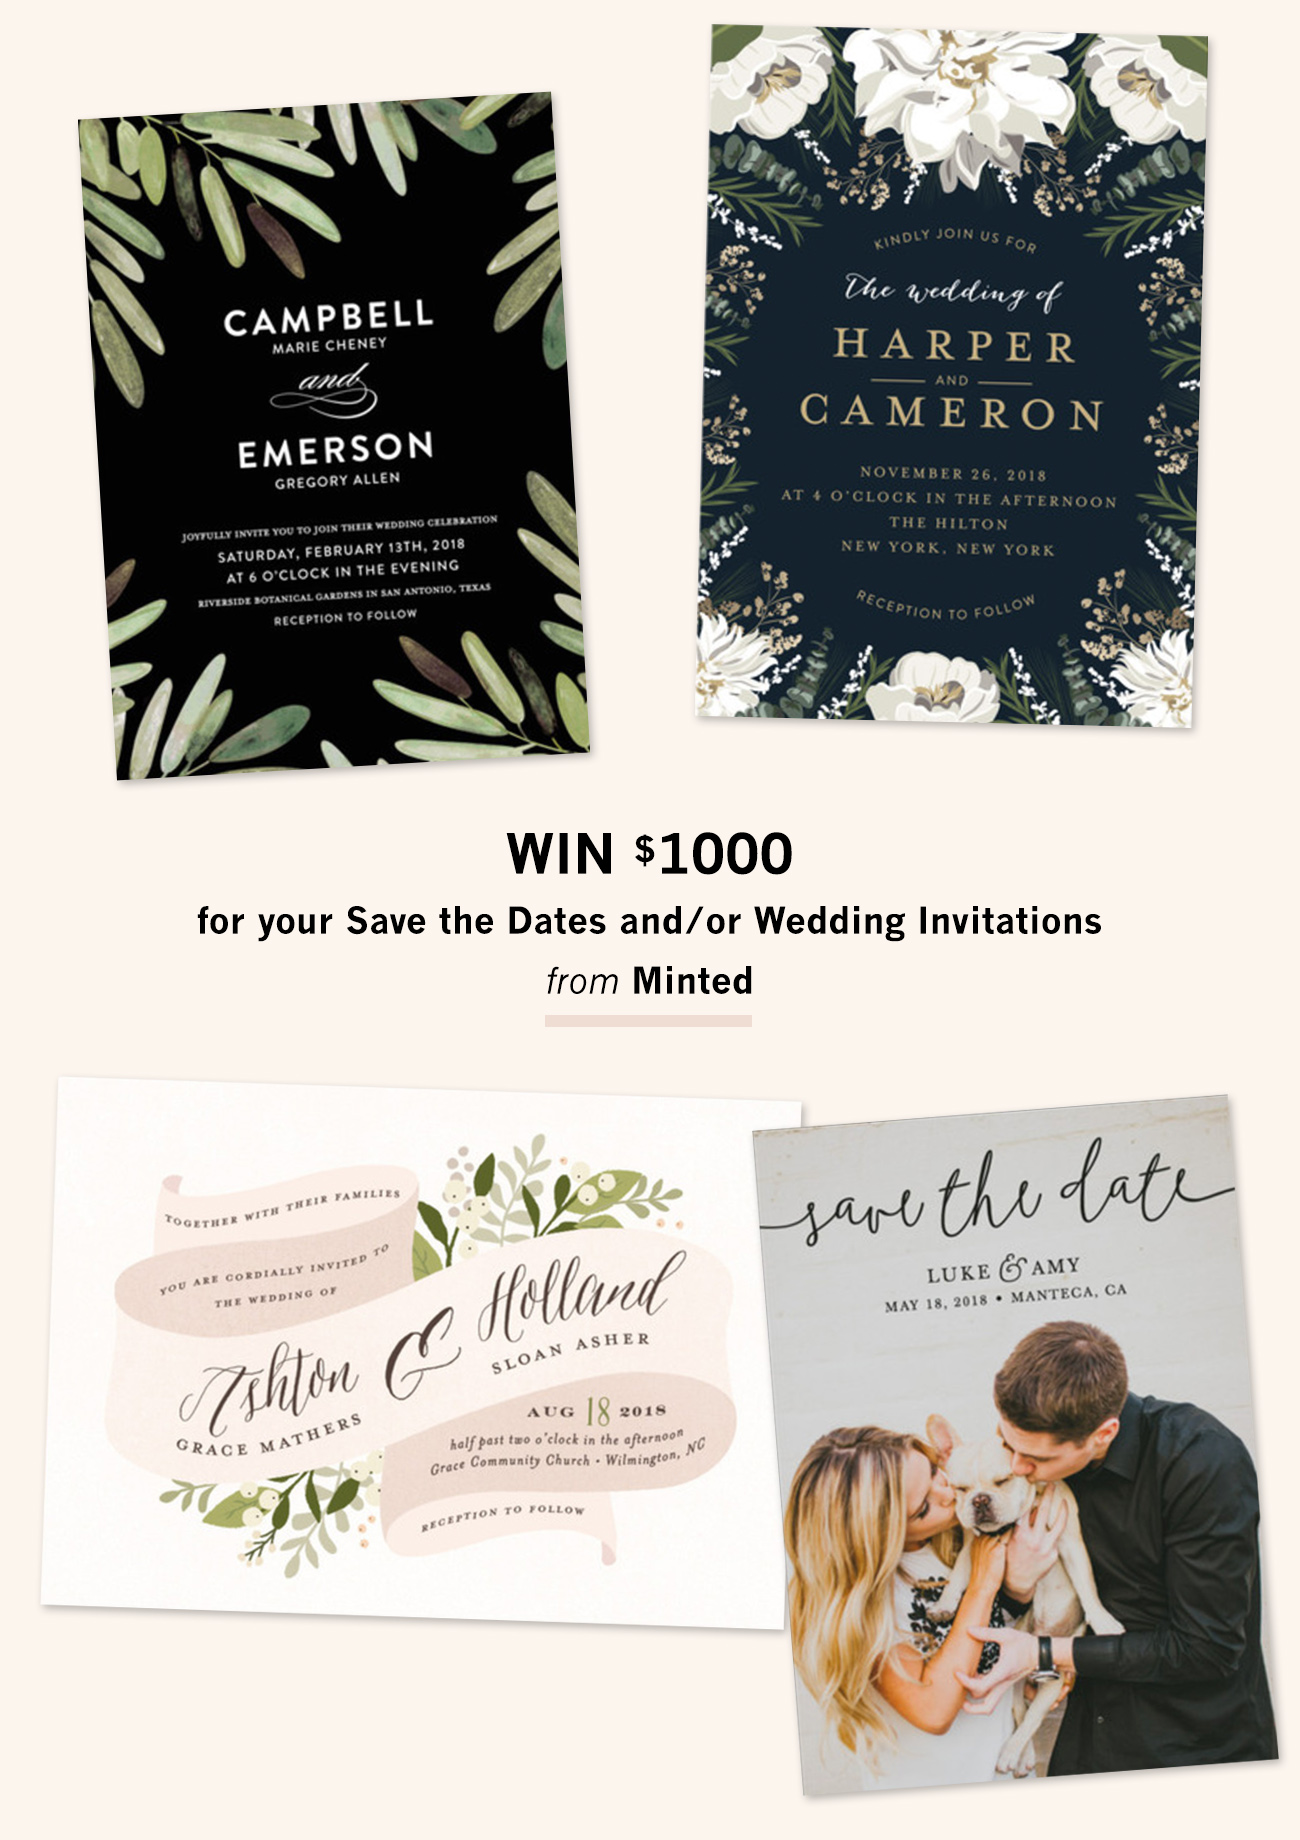 Invitation suites from minted 1000 giveaway green wedding shoes win 1000 from minted junglespirit Gallery